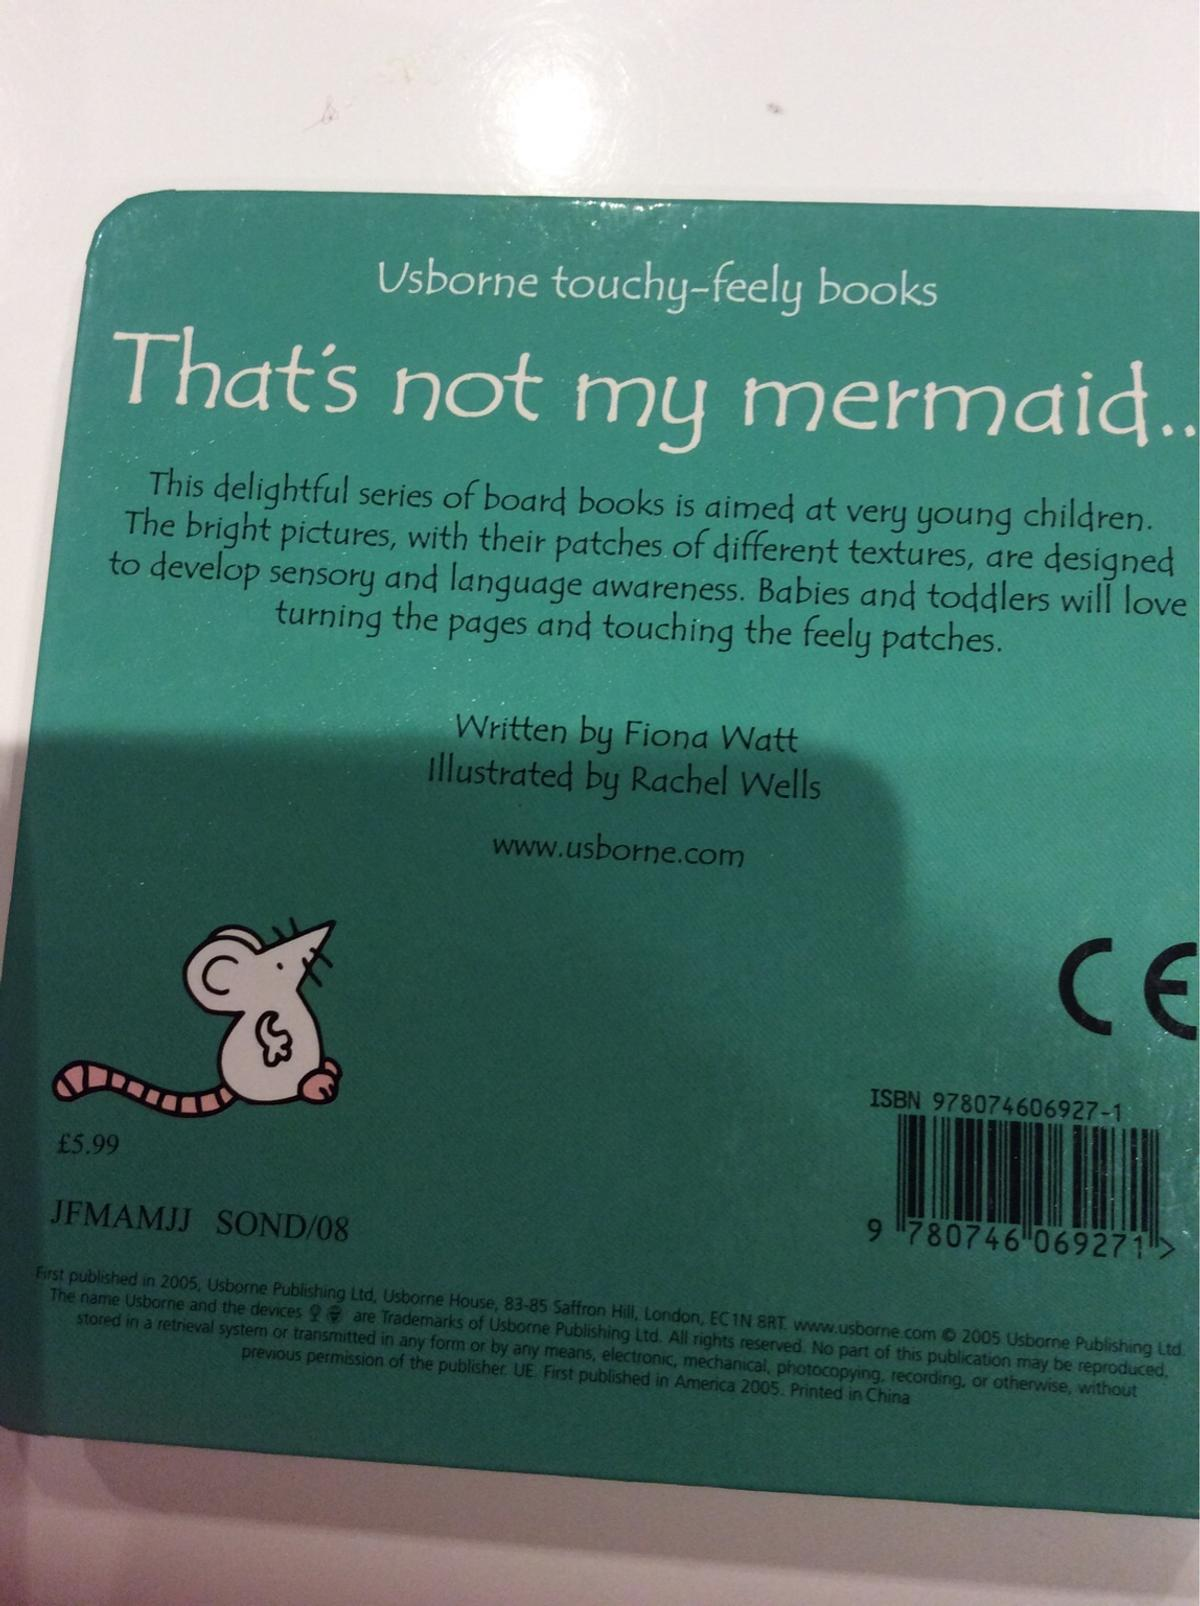 That's Not My Mermaid... Usborne Touchy-Feely Books New Cost £5.99 Excellent Condition (Happy to post)